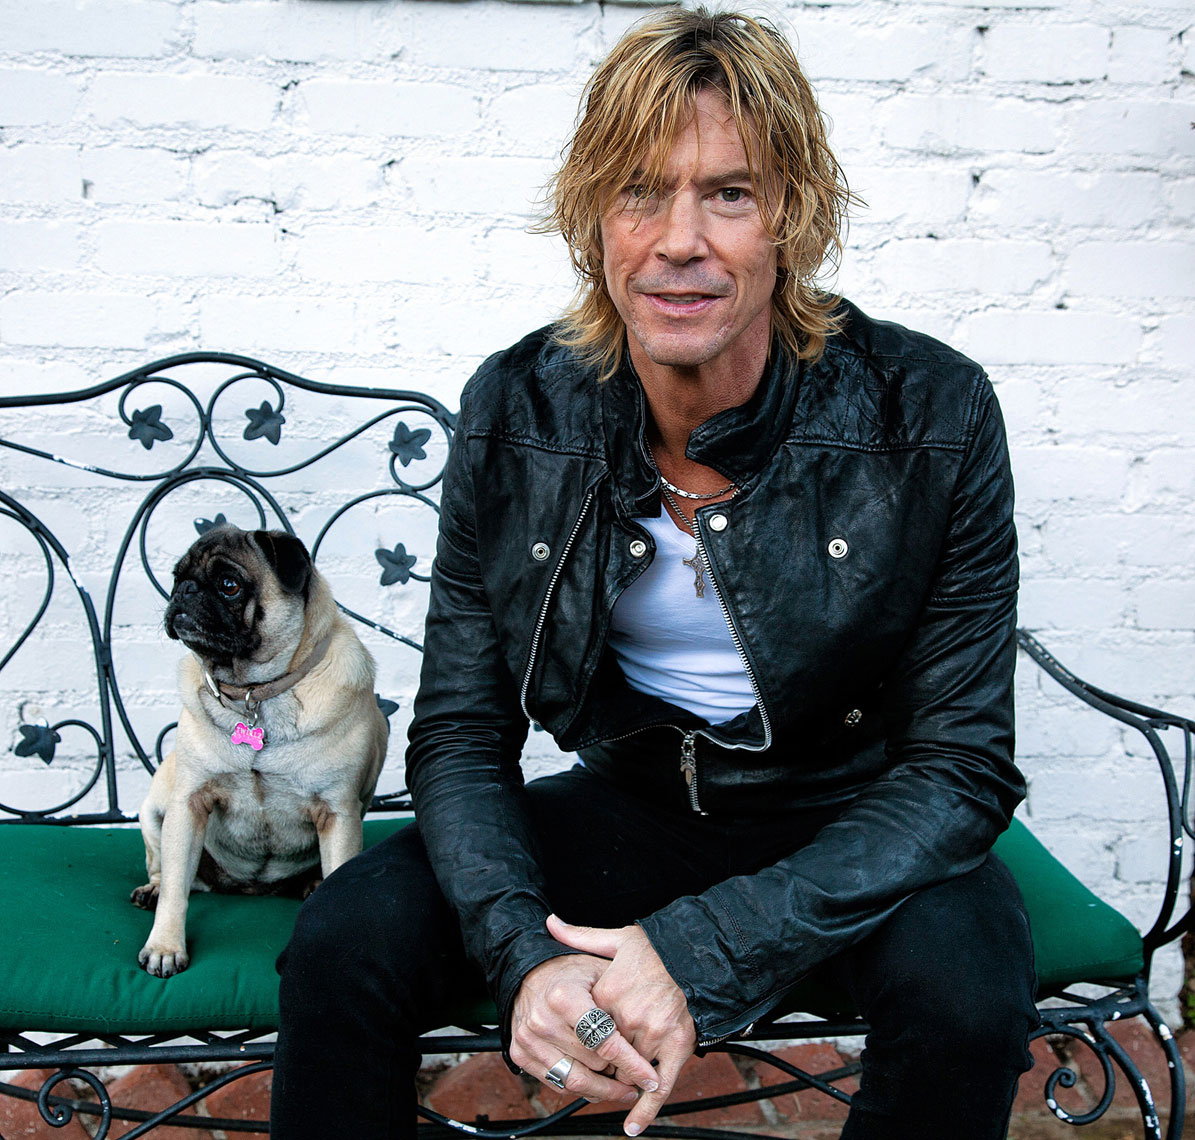 MANUELLO PAGANELLI  Photographer  / PORTRAIT, EDITORIAL, TRAVEL  /  ADVENTURE, LIFESTYLE, MAGAZINE - HOLLYWOOD, SAN FRANCISCO, LOS ANGELES California - PORTRAIT - Duff McKagan, Guns N